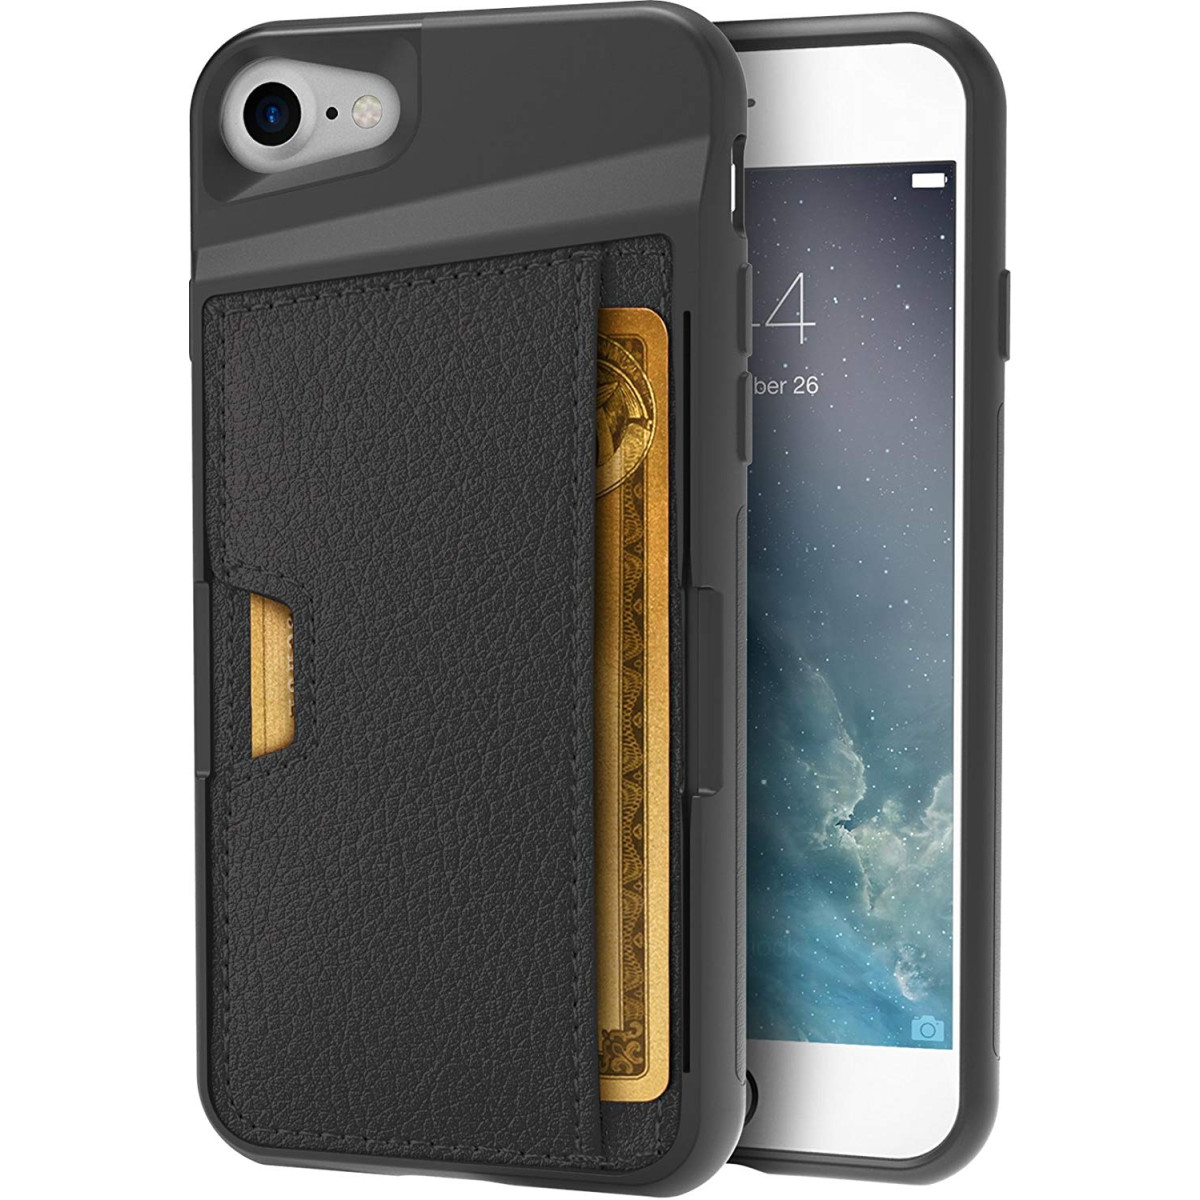 online store 416be 58721 Silk iPhone 7/8 Wallet Case - Q Card CASE [Slim Protective Kickstand CM4  Grip Cover] - Wallet Slayer Vol. 2 - Black Onyx